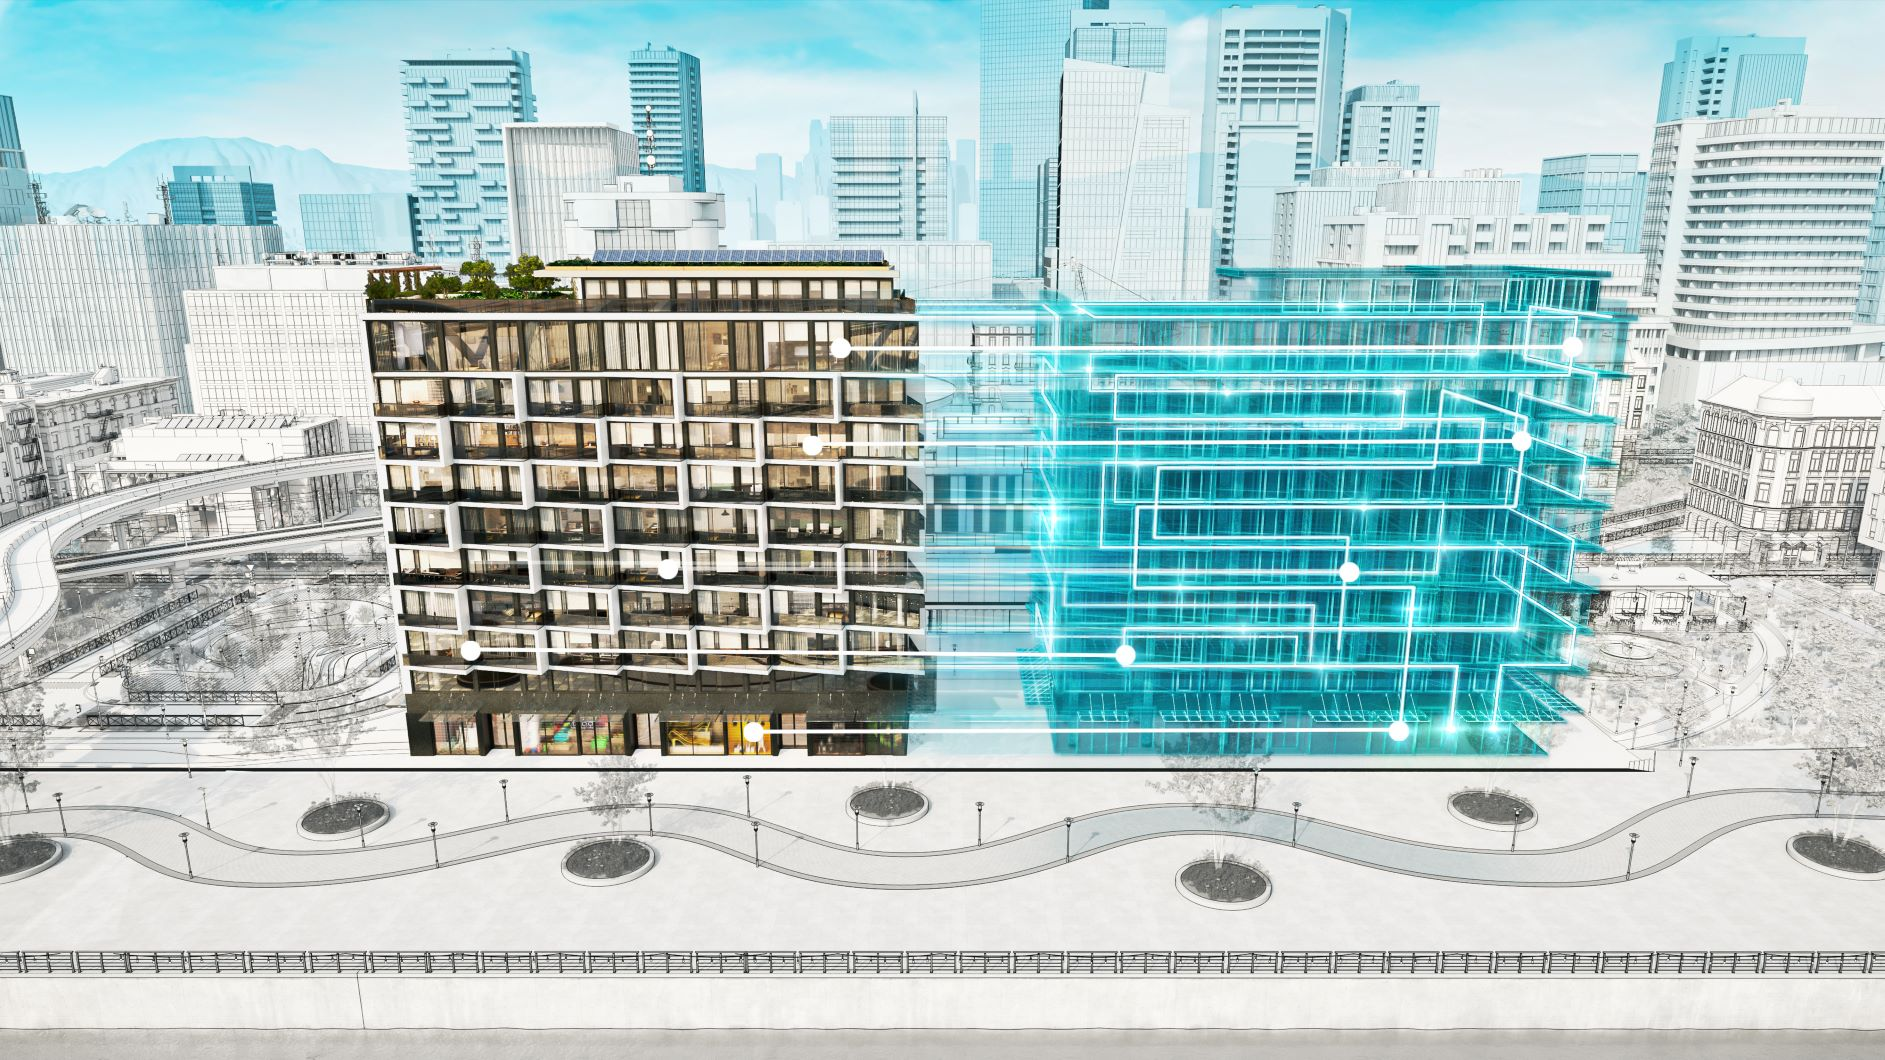 Image of a digital model of a building, also called a Digital Twin.